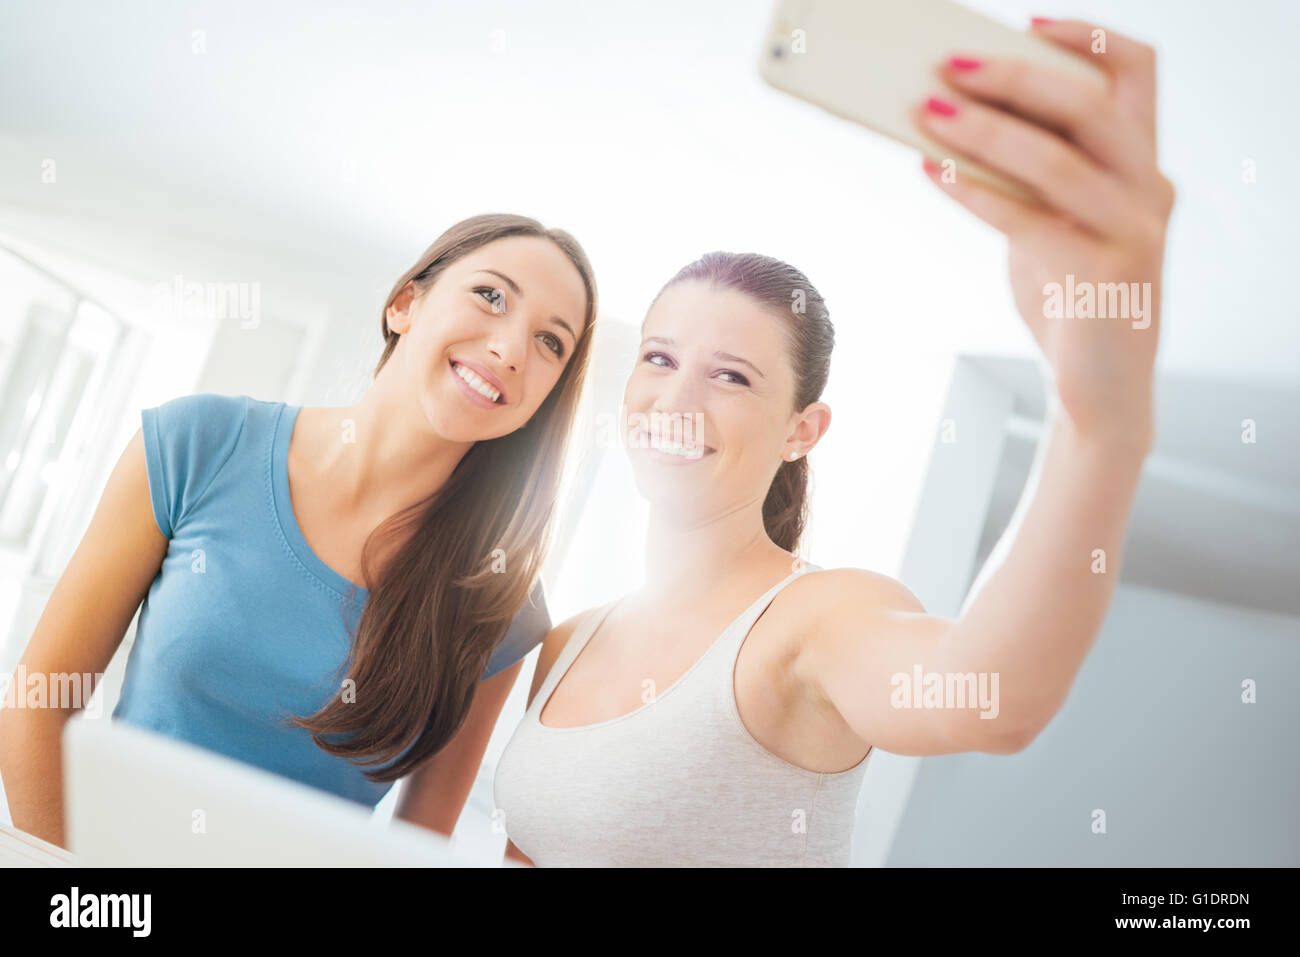 Cheerful young girls taking selfies with a touch screen smart phone and having fun - Stock Image